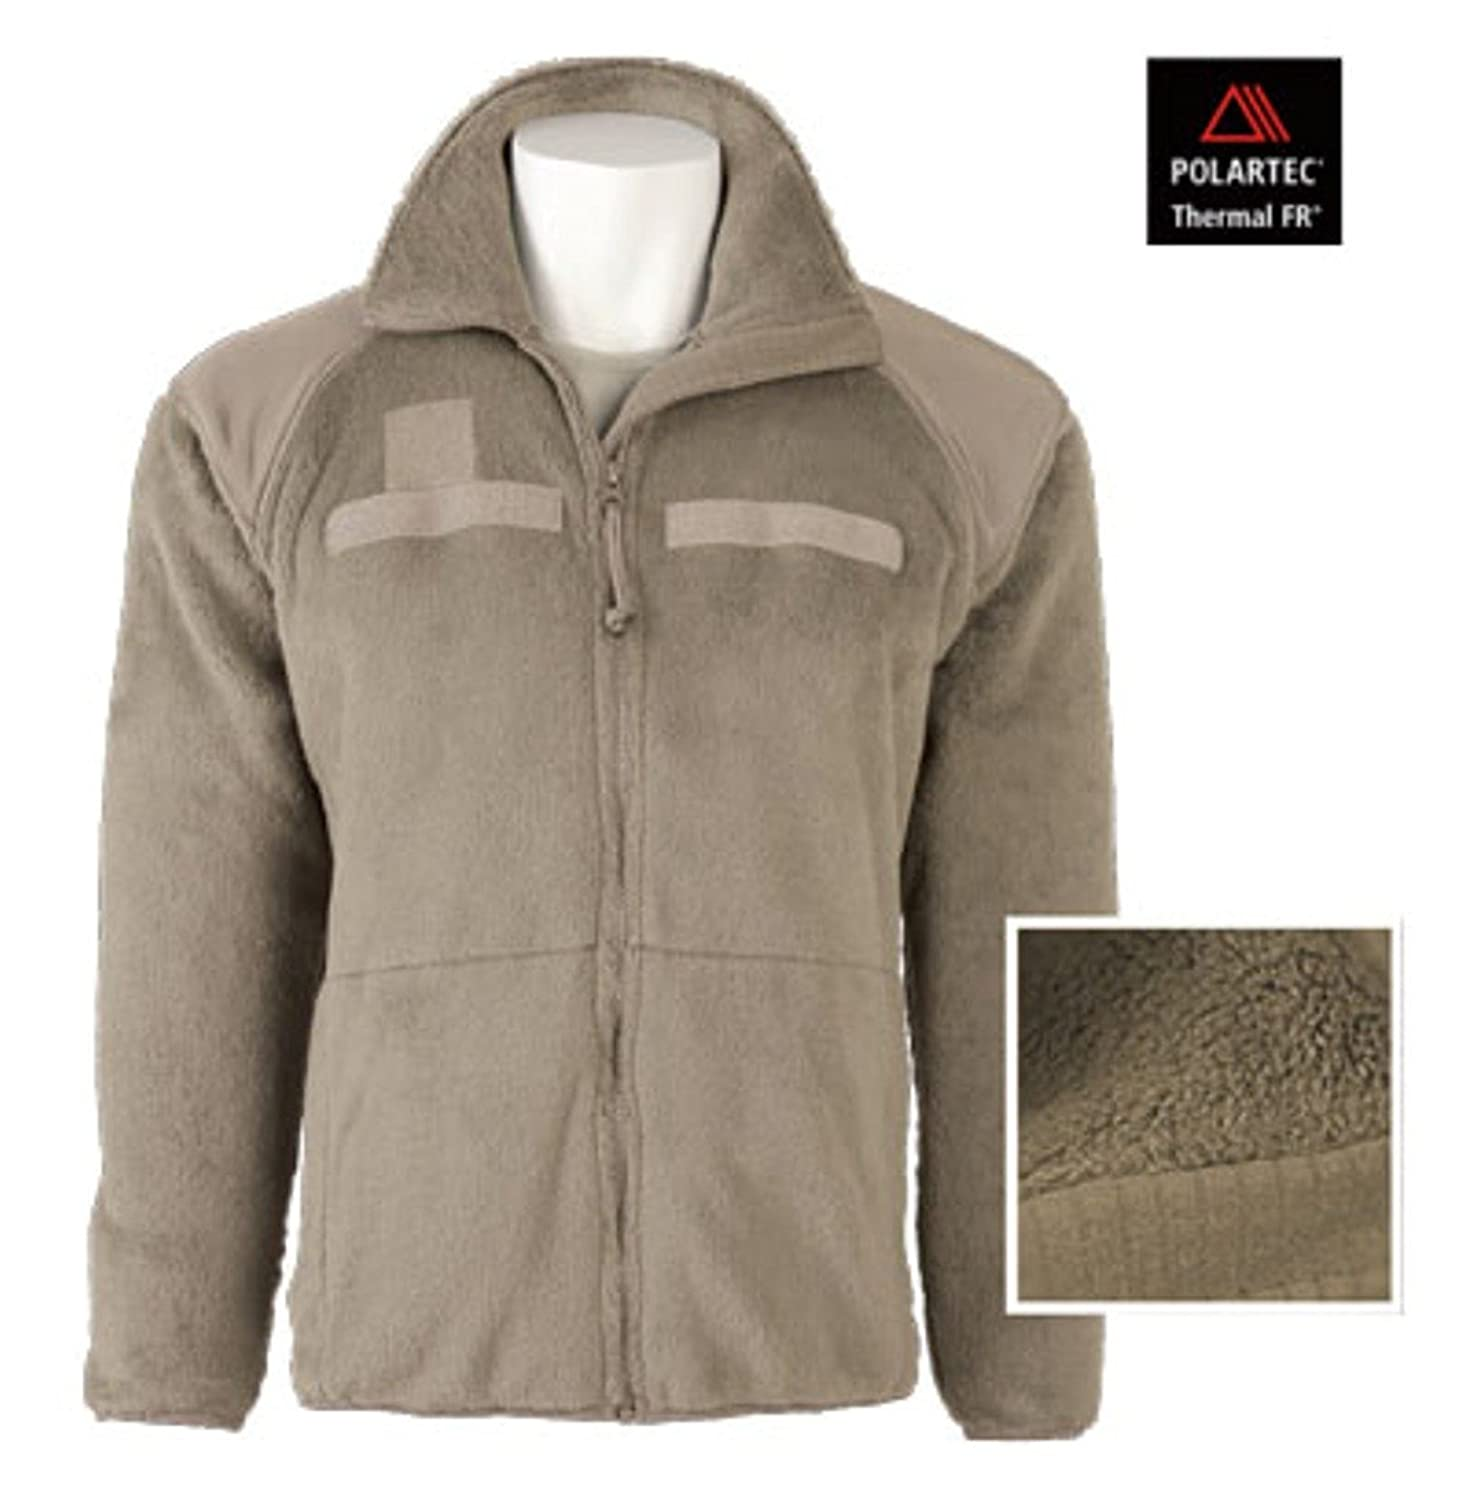 Polartec FR Fleece Jacket FR ECWCS (NON Military Issue) Coyote Tan ...